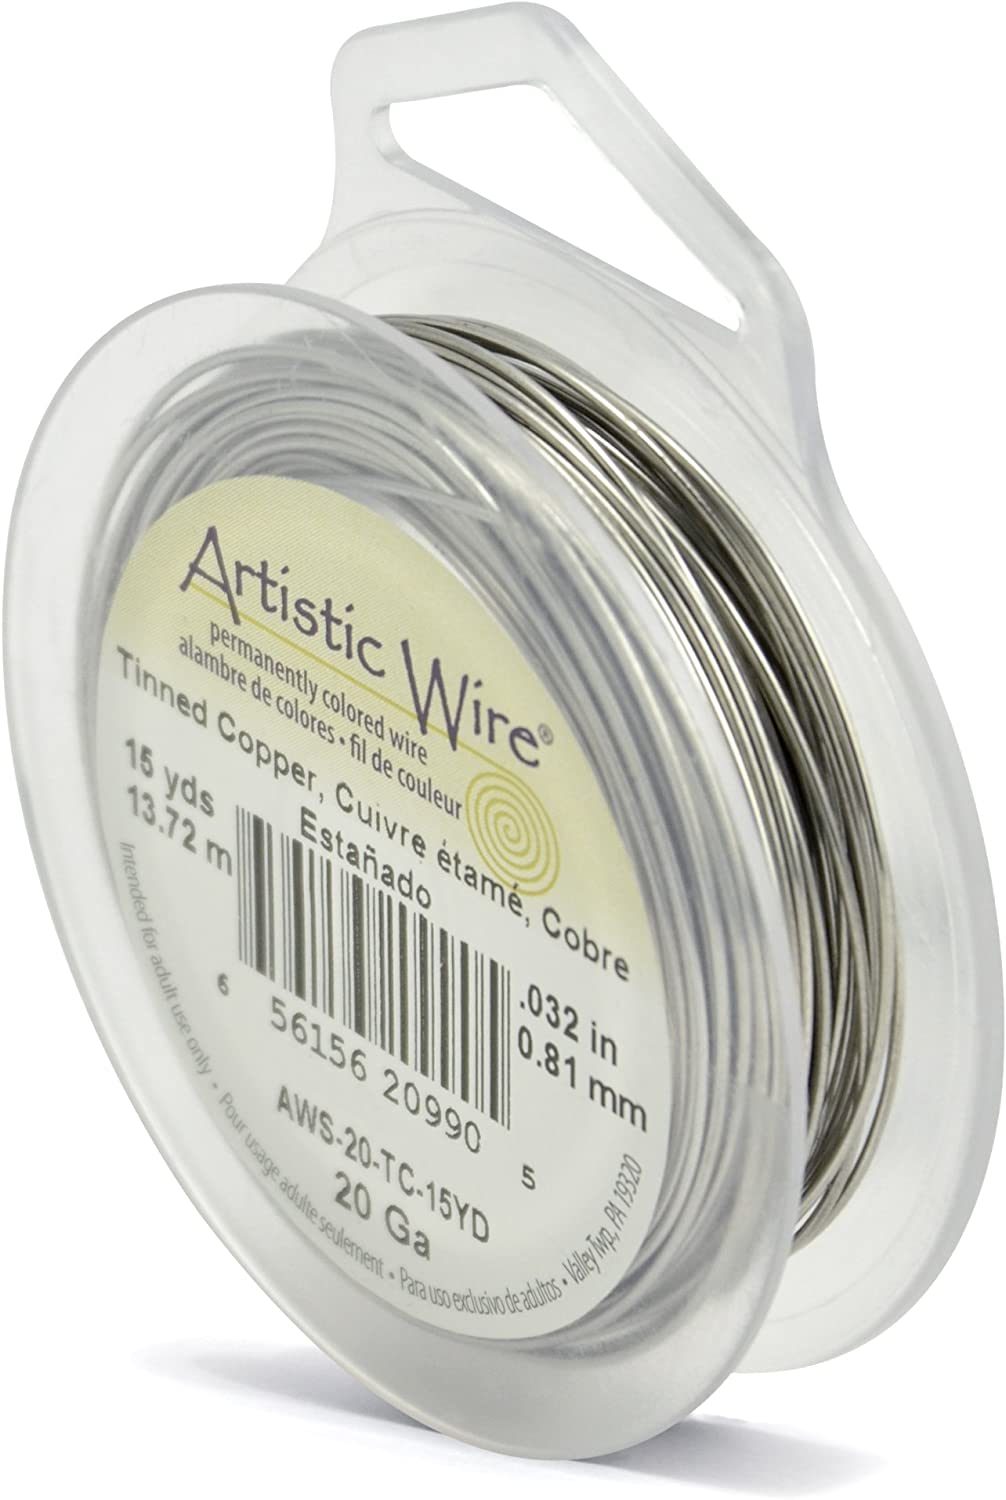 22 Gauge Tinned Copper Artistic Wire Spool 15 Yards Jewelry Making Tool